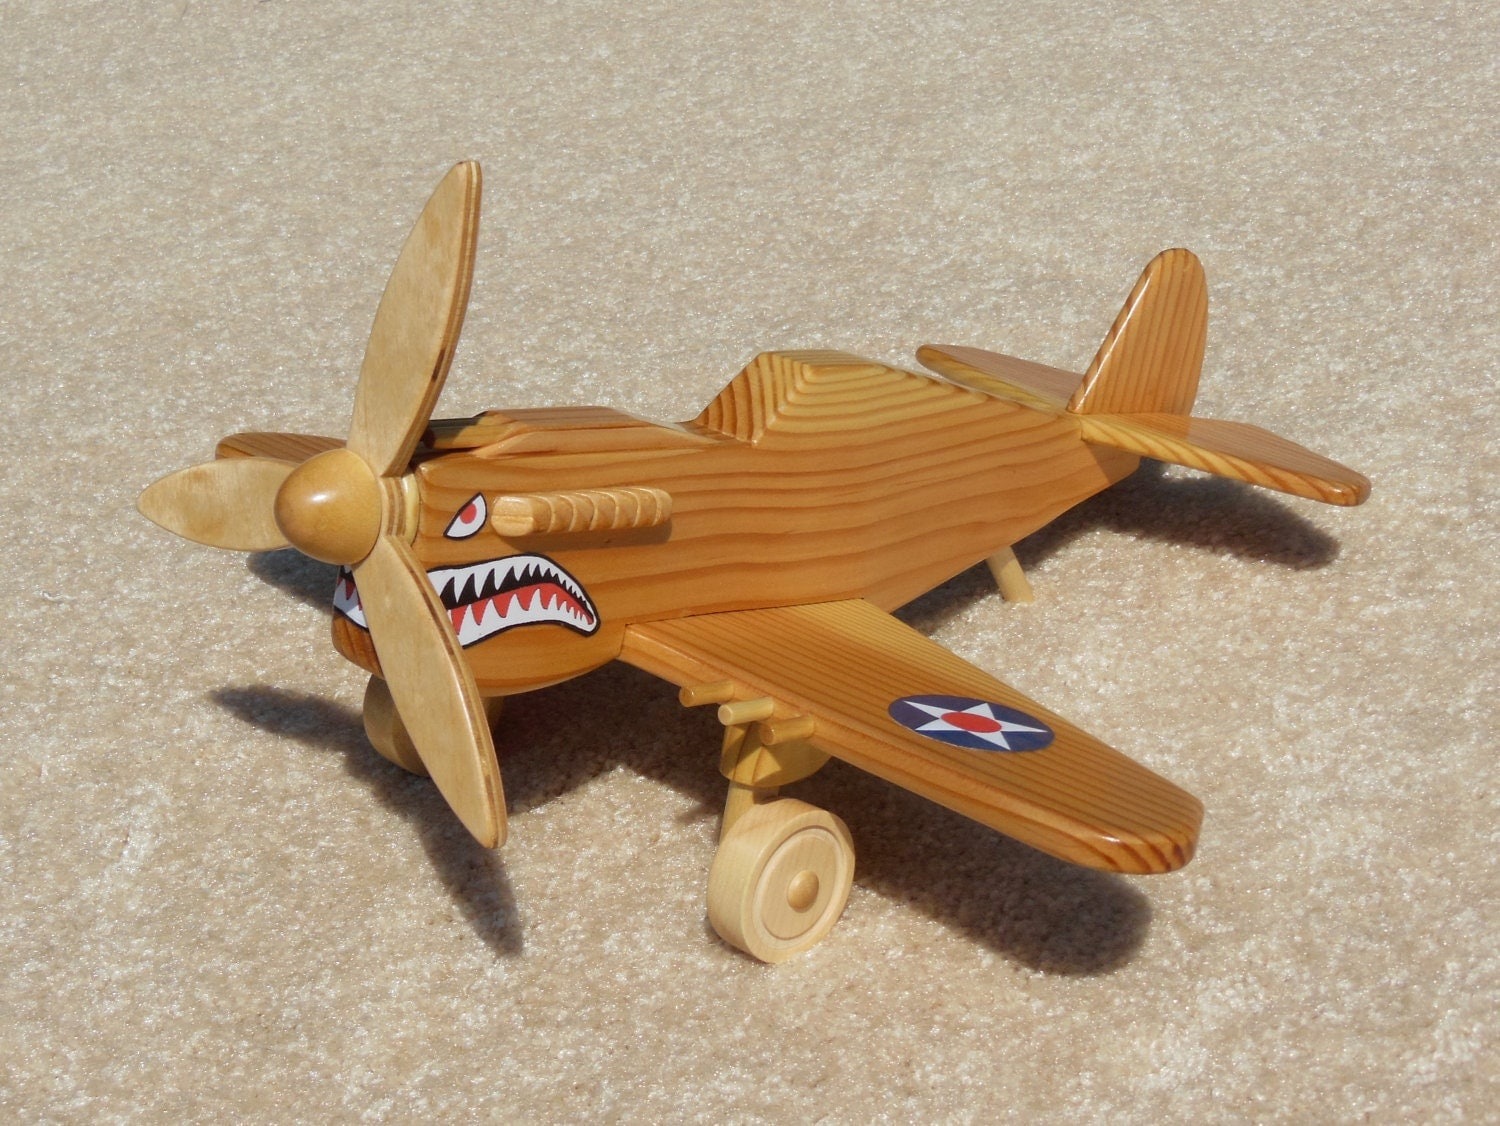 ... Wooden P 40 Fighter Flying Tiger Toy also Wooden Toy Storage Box Plans